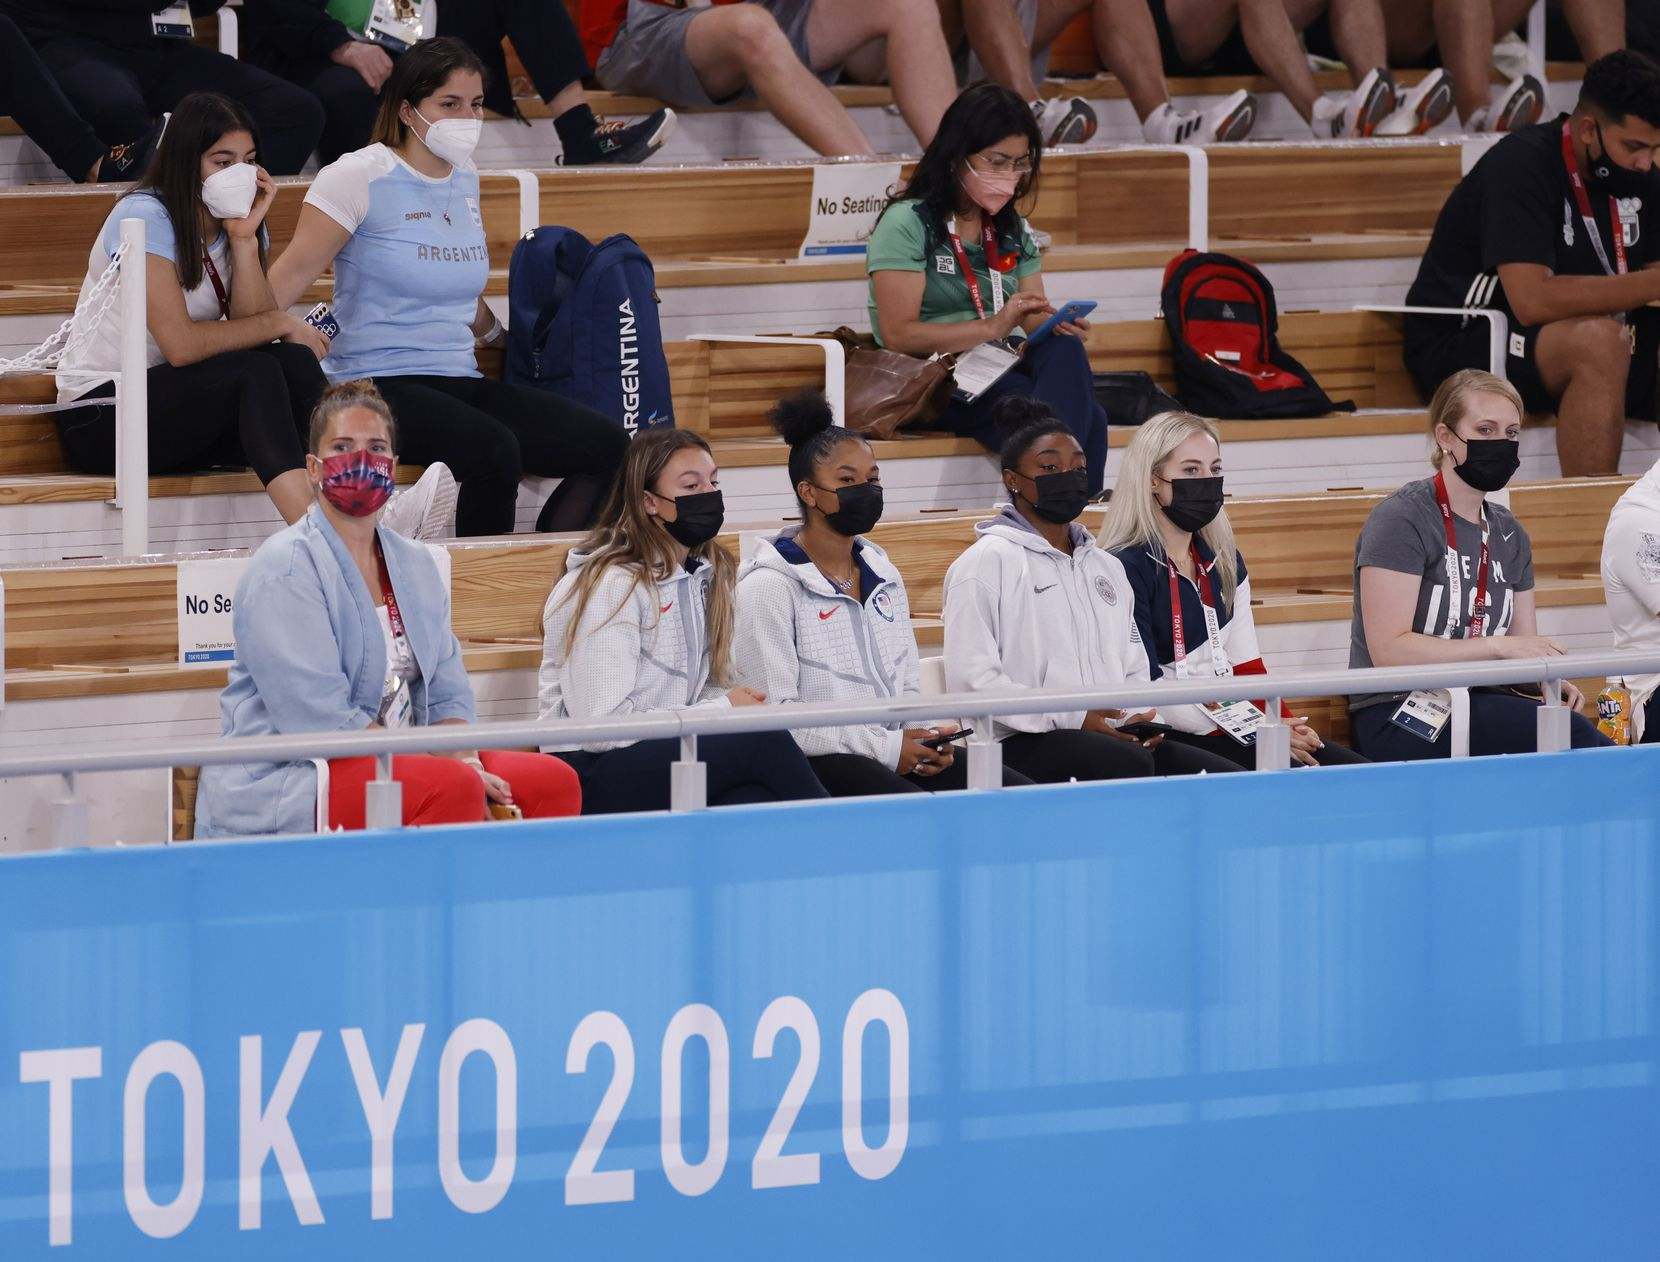 (From l to r) USA's Grace McCallum, Jordan Chiles, Simone Biles, and MyKayla Skinner watch competition during the women's gymnastics individual all-around final at the postponed 2020 Tokyo Olympics at Ariake Gymnastics Centre, on Thursday, July 29, 2021, in Tokyo, Japan. (Vernon Bryant/The Dallas Morning News)